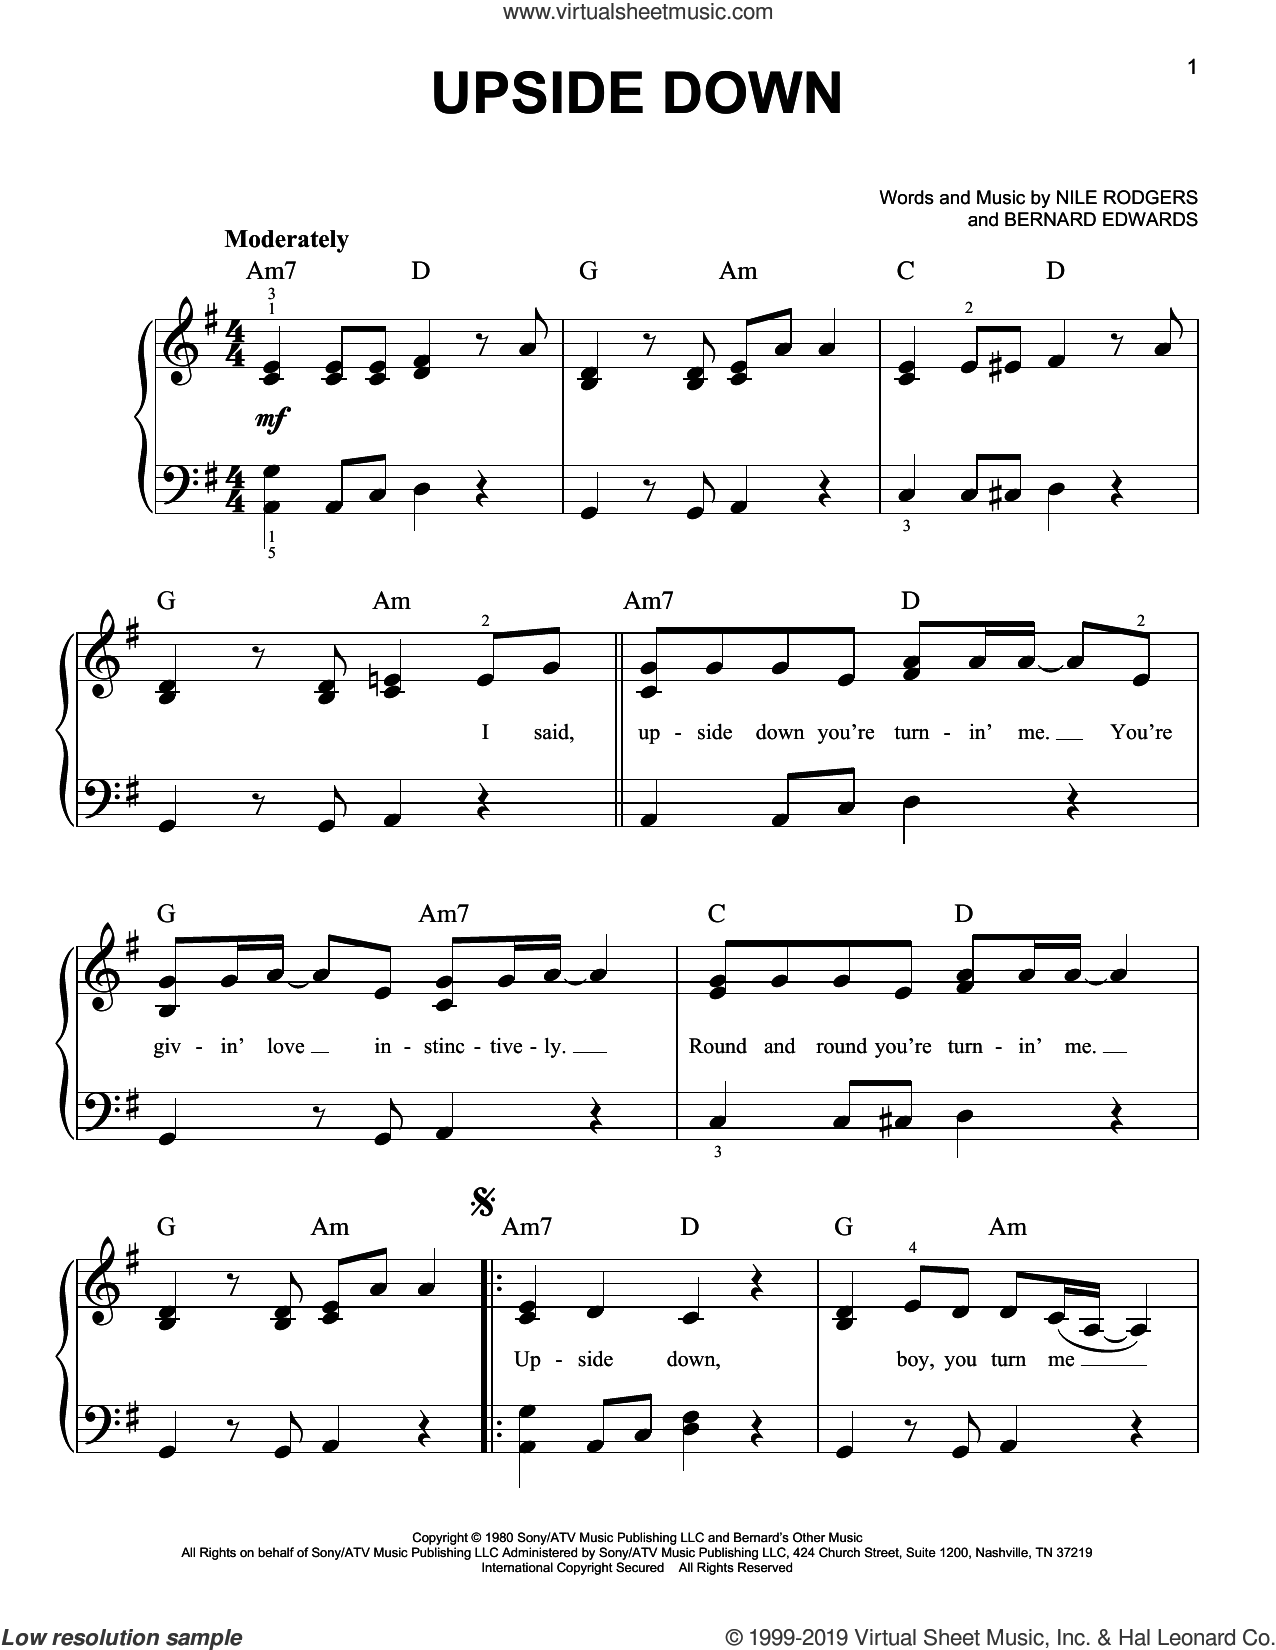 Upside Down sheet music for piano solo by Diana Ross, Bernard Edwards and Nile Rodgers, easy skill level